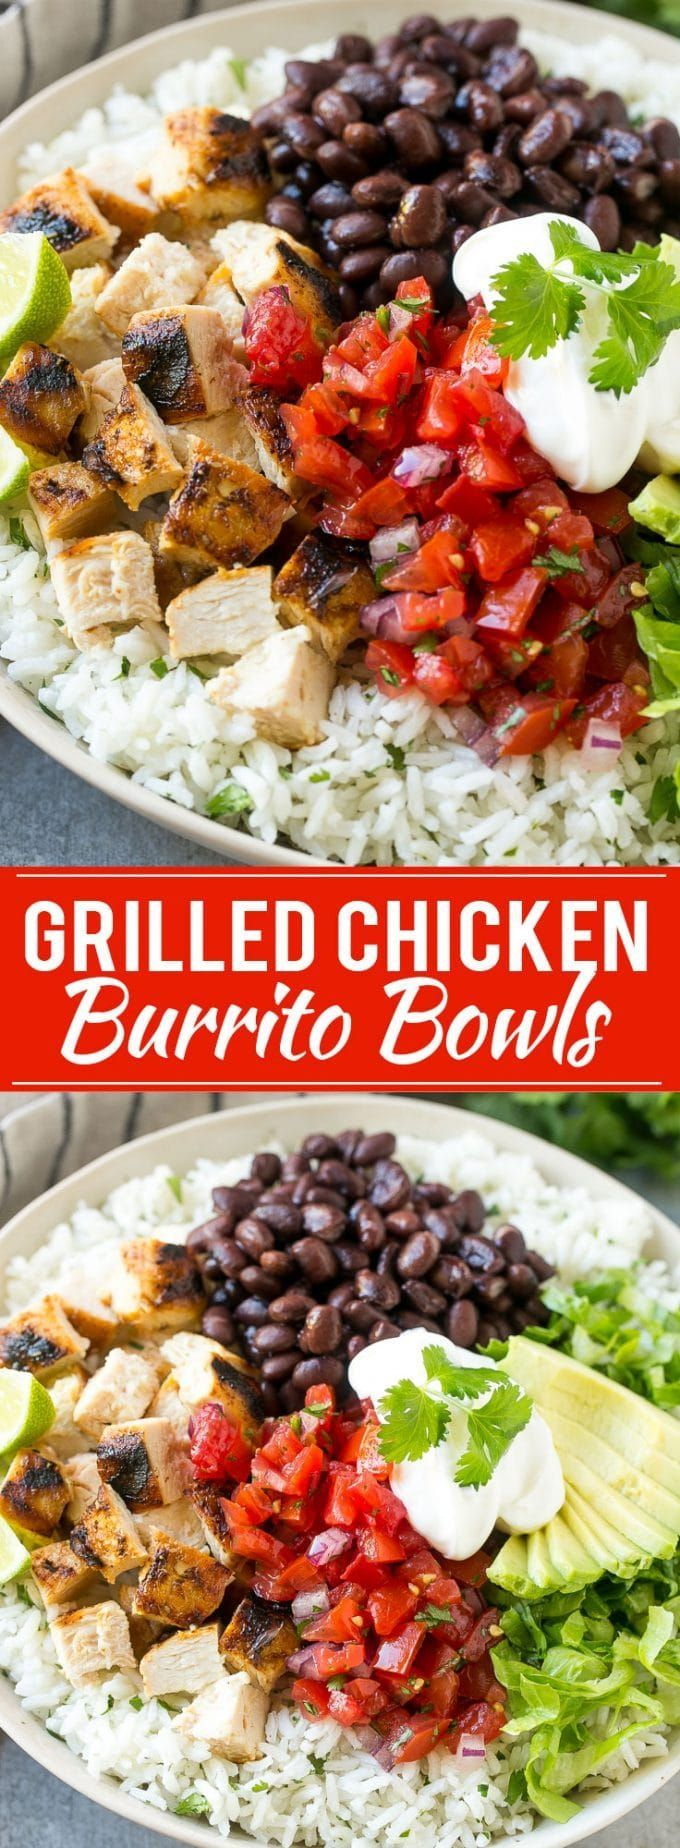 Chicken Burrito Bowls Recipe | Grilled Chicken Recipe | Burrito Bowl | Mexican Chicken via @dinneratthezoo